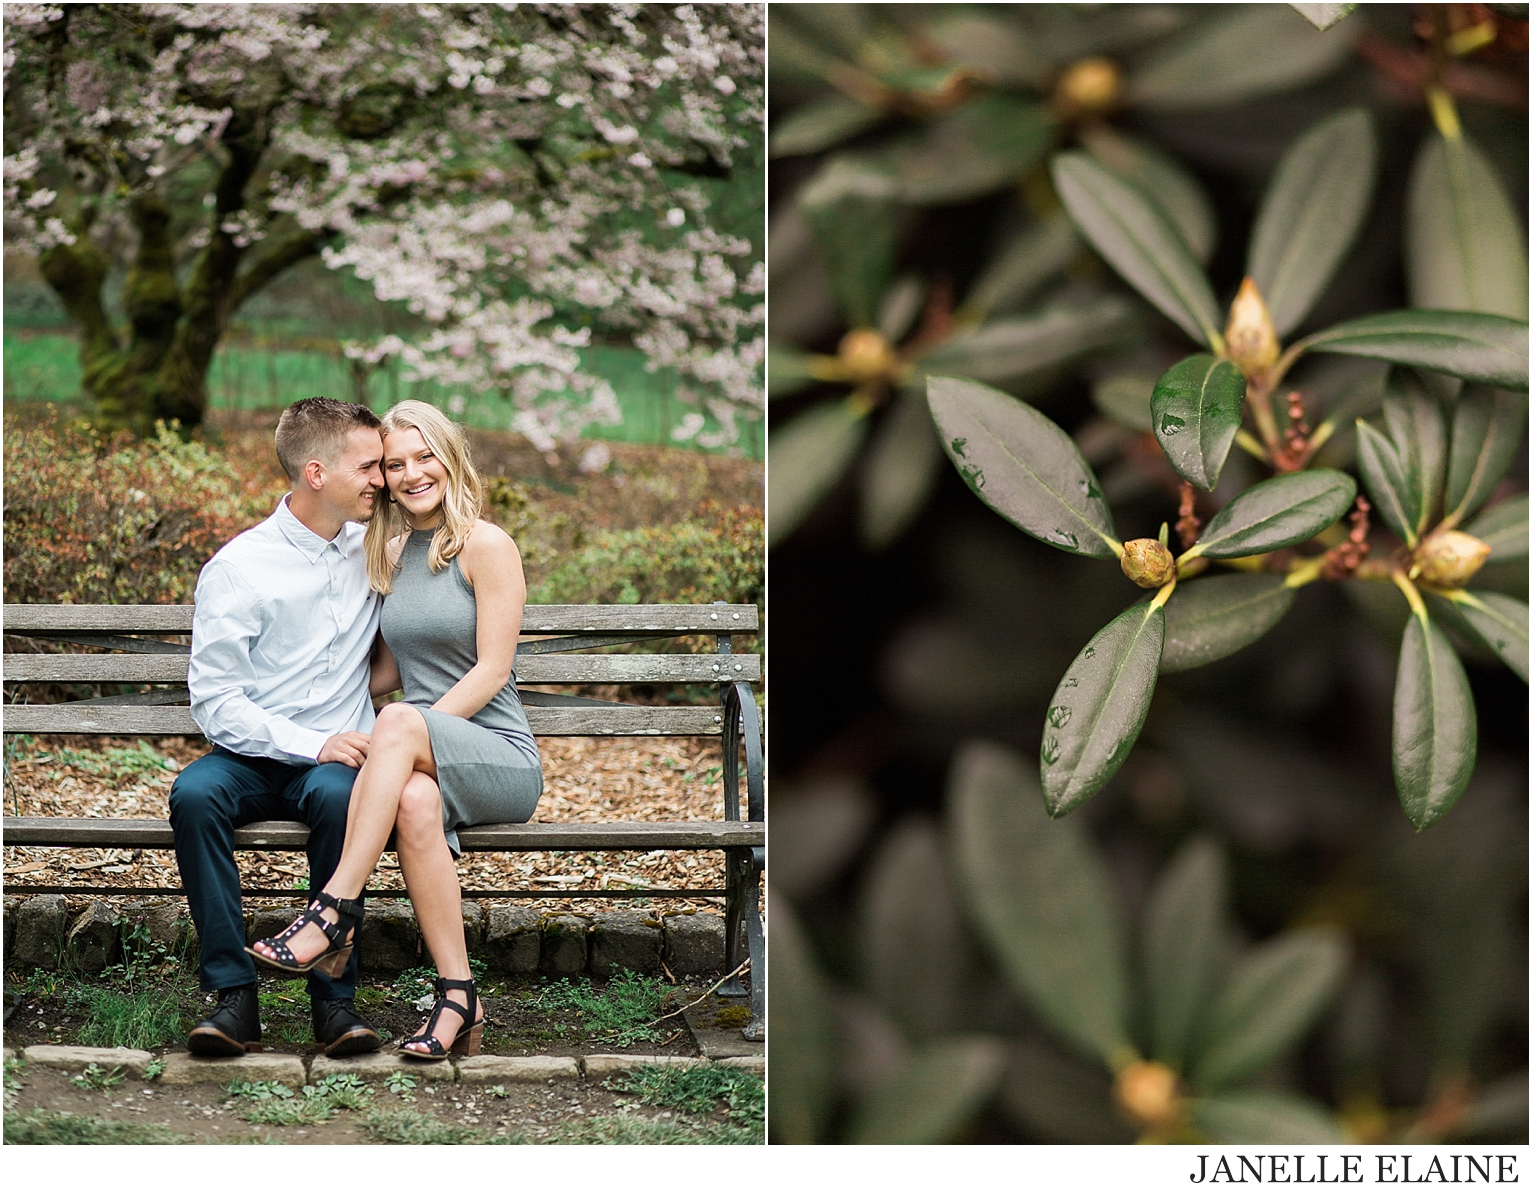 tricia and nate engagement photos-janelle elaine photography-3.jpg